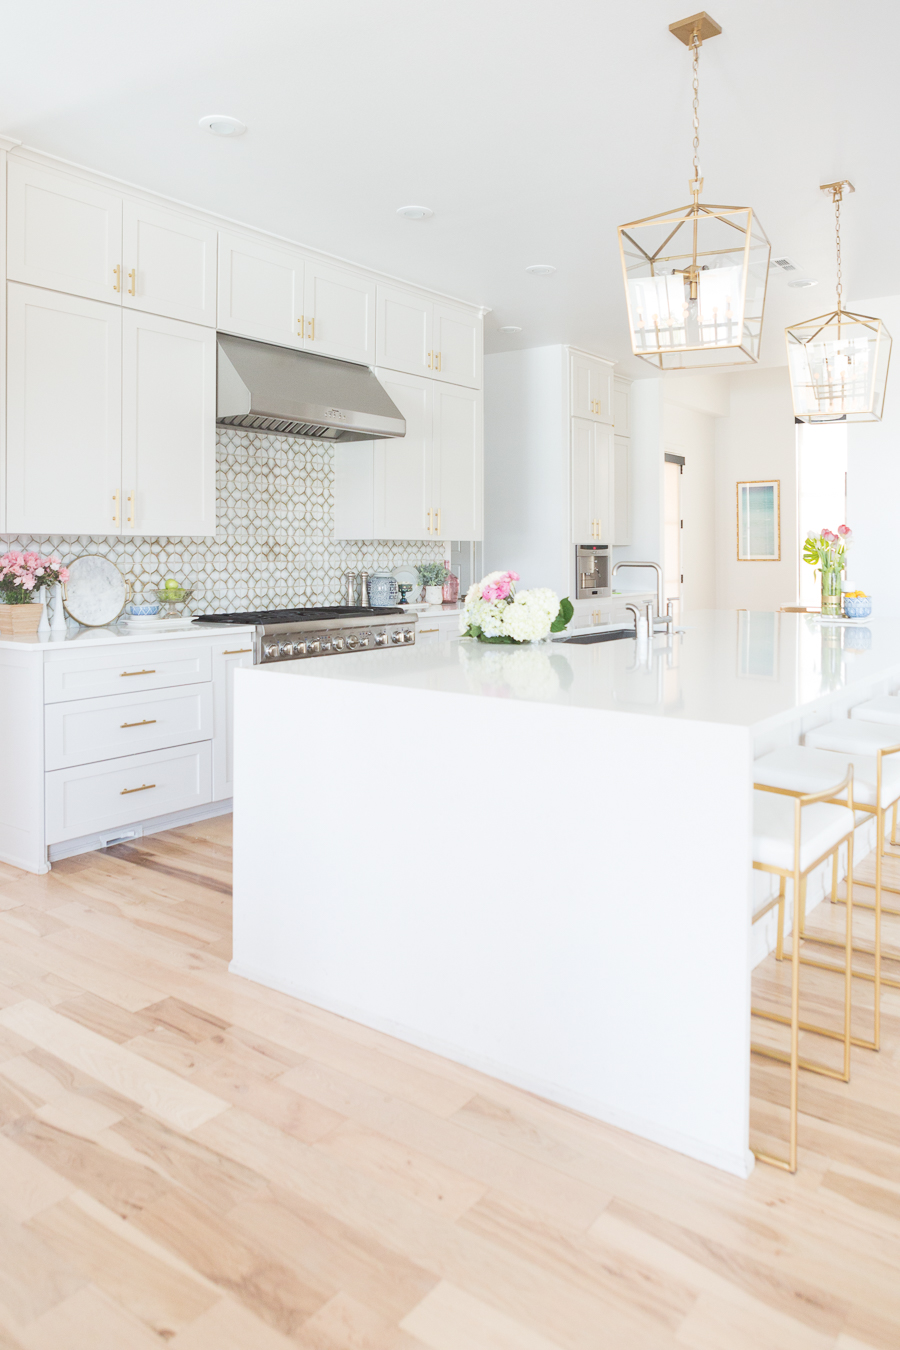 Affordable Ceramic Patterned Tile Backsplash affordable modern gold bar stools white kitchen with gold hardware design ideas patterned tile backsplash kitchen gold kitchen lantern lighting